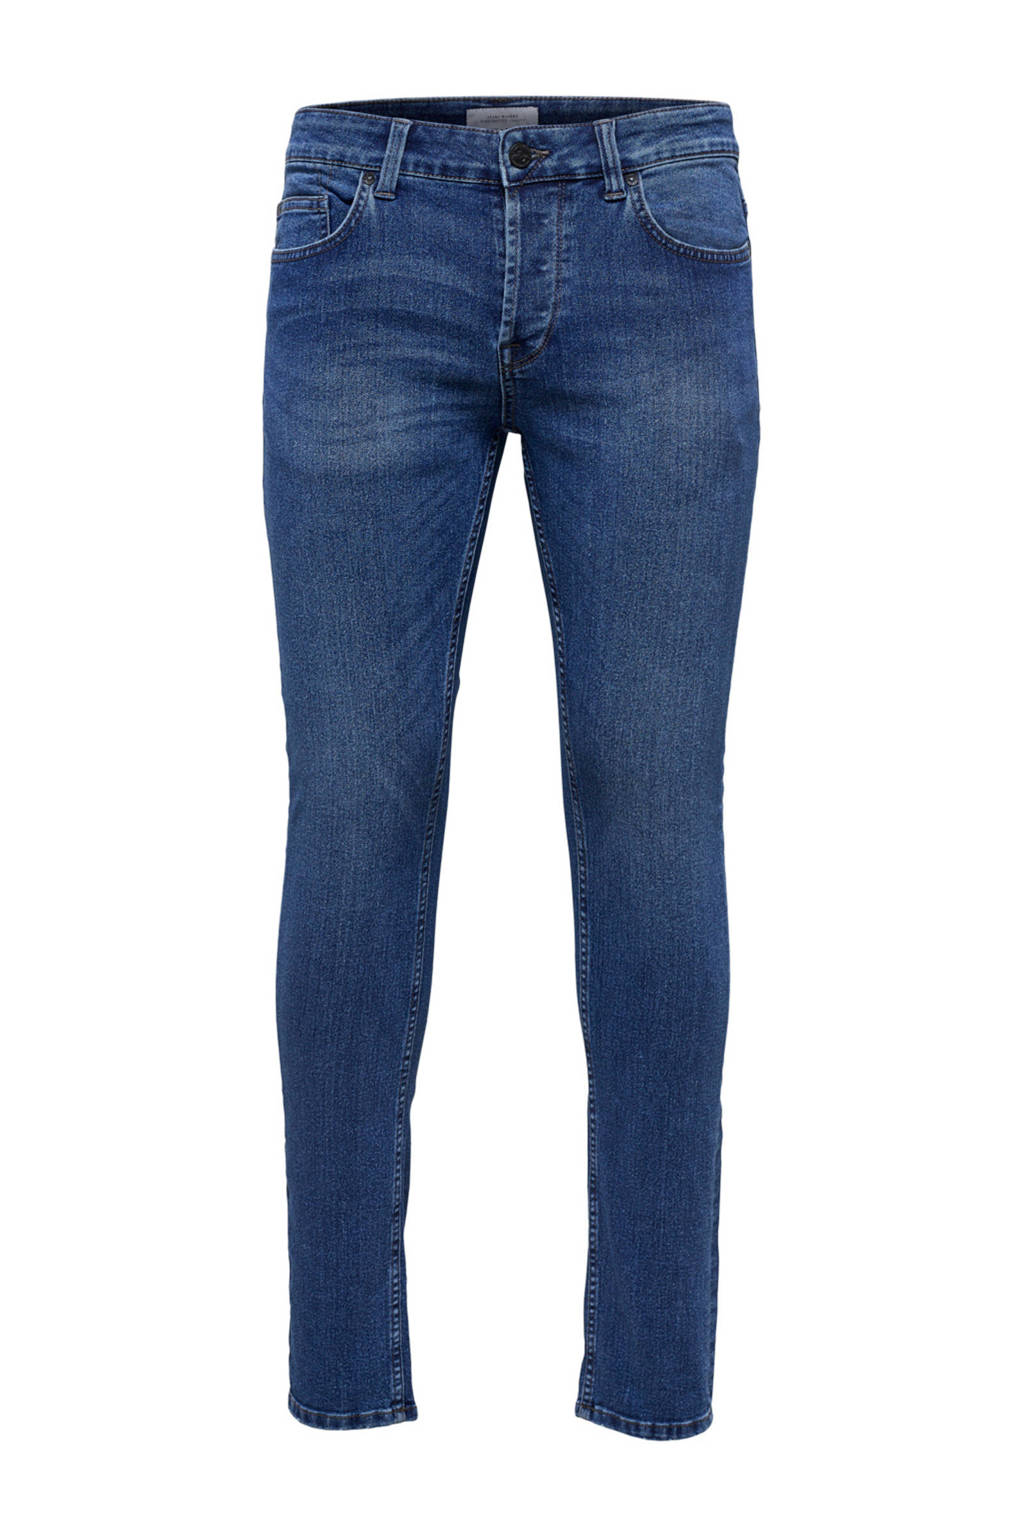 Only & Sons skinny fit jeans, Blauw